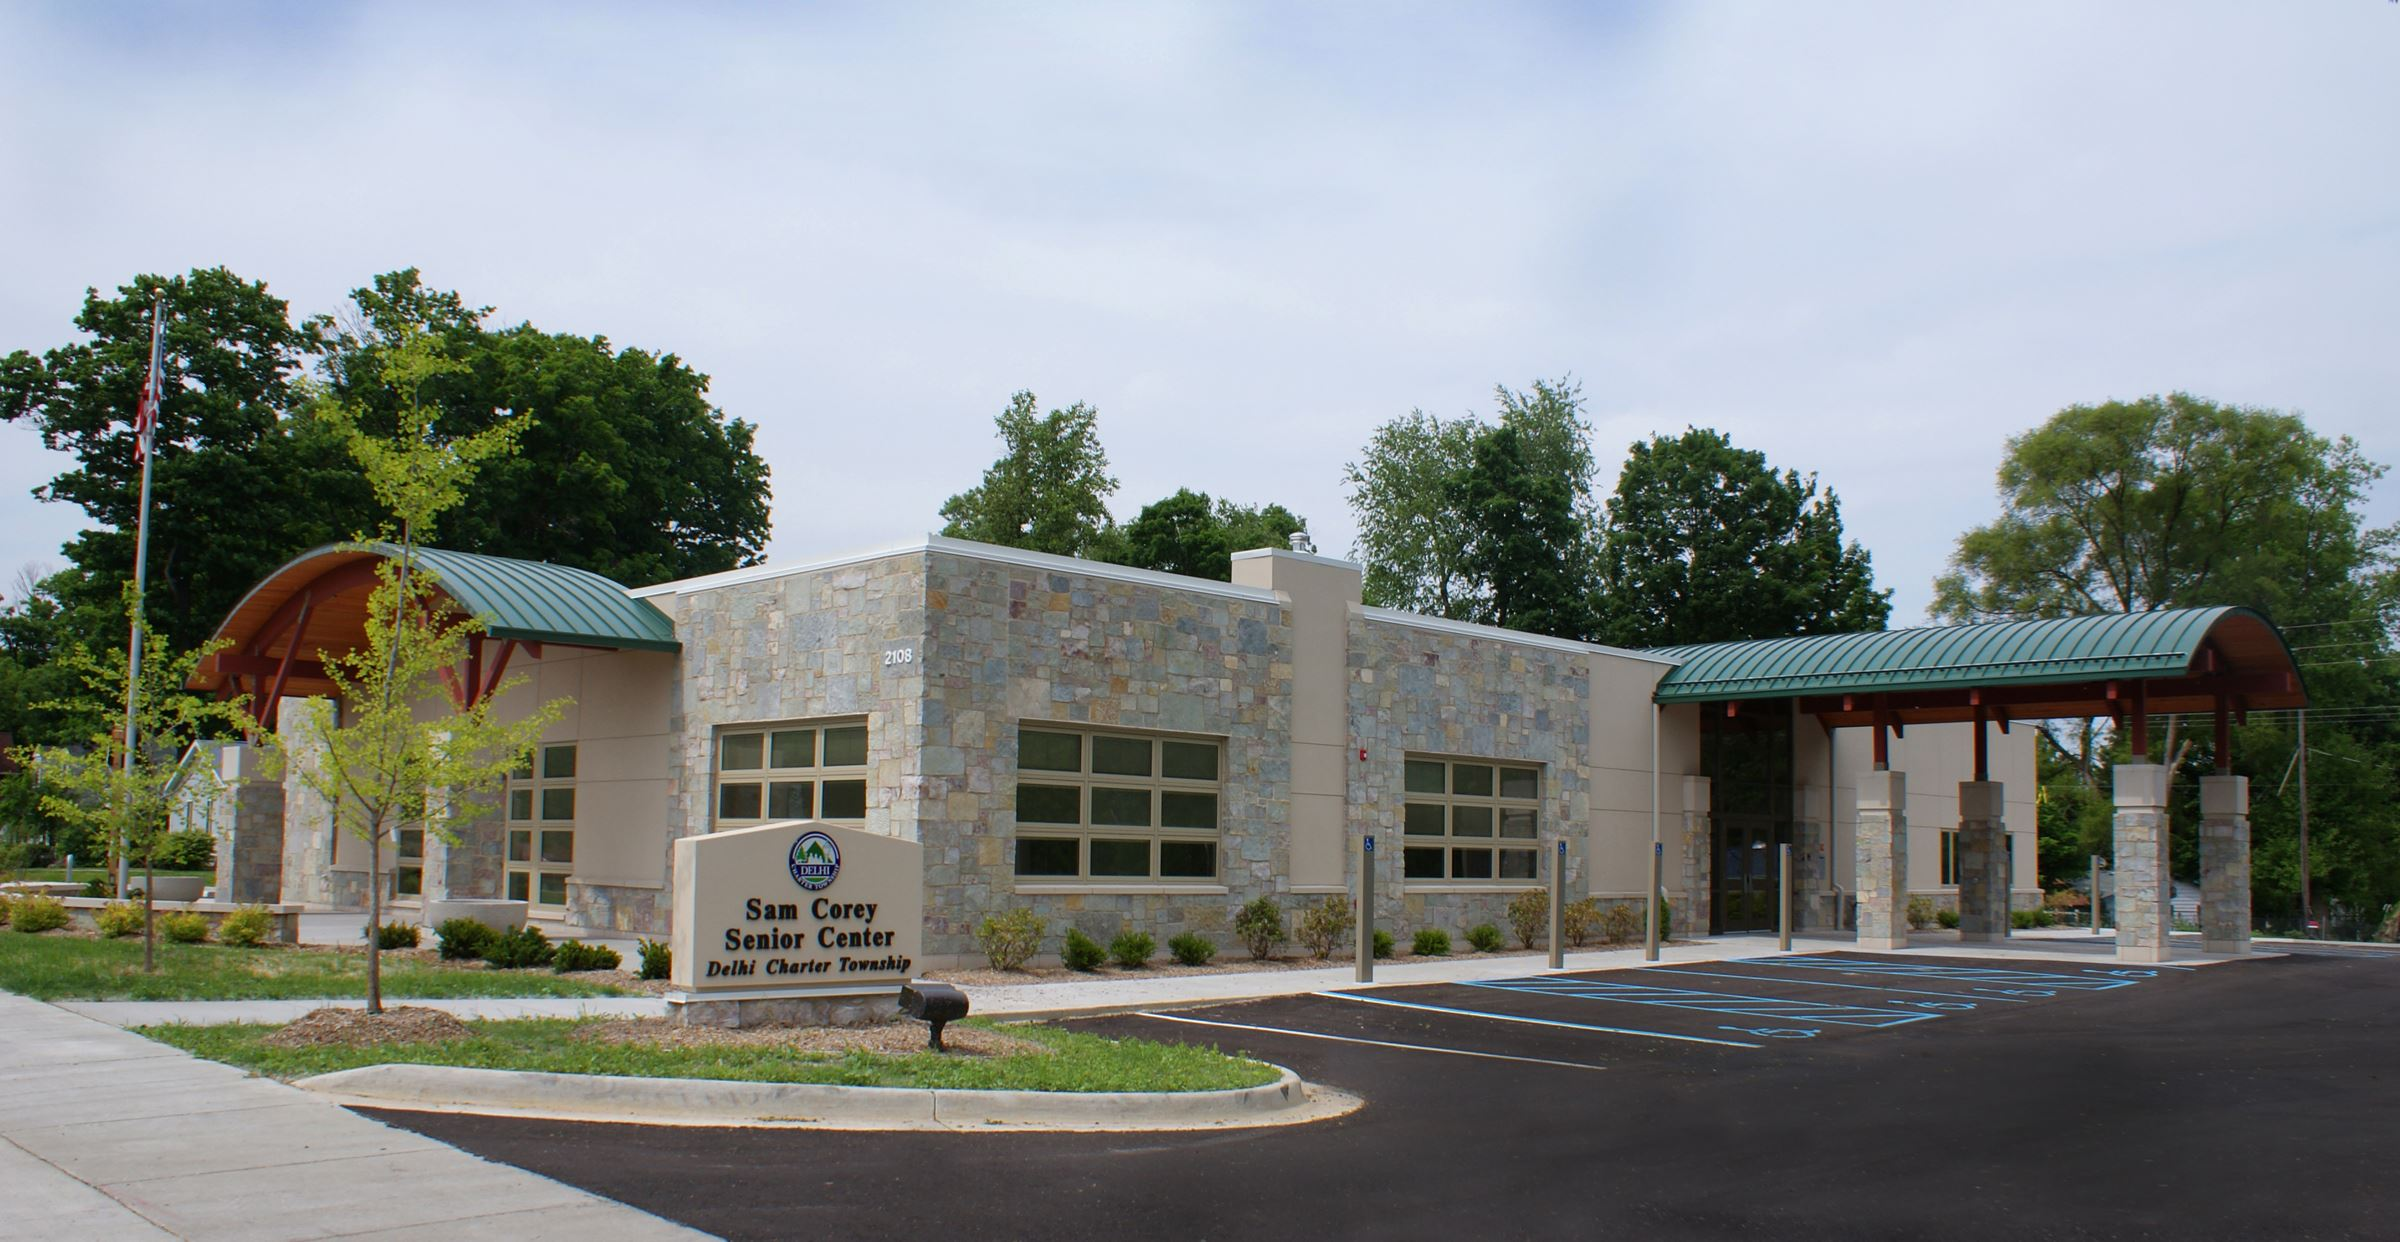 Sam Corey Senior Center